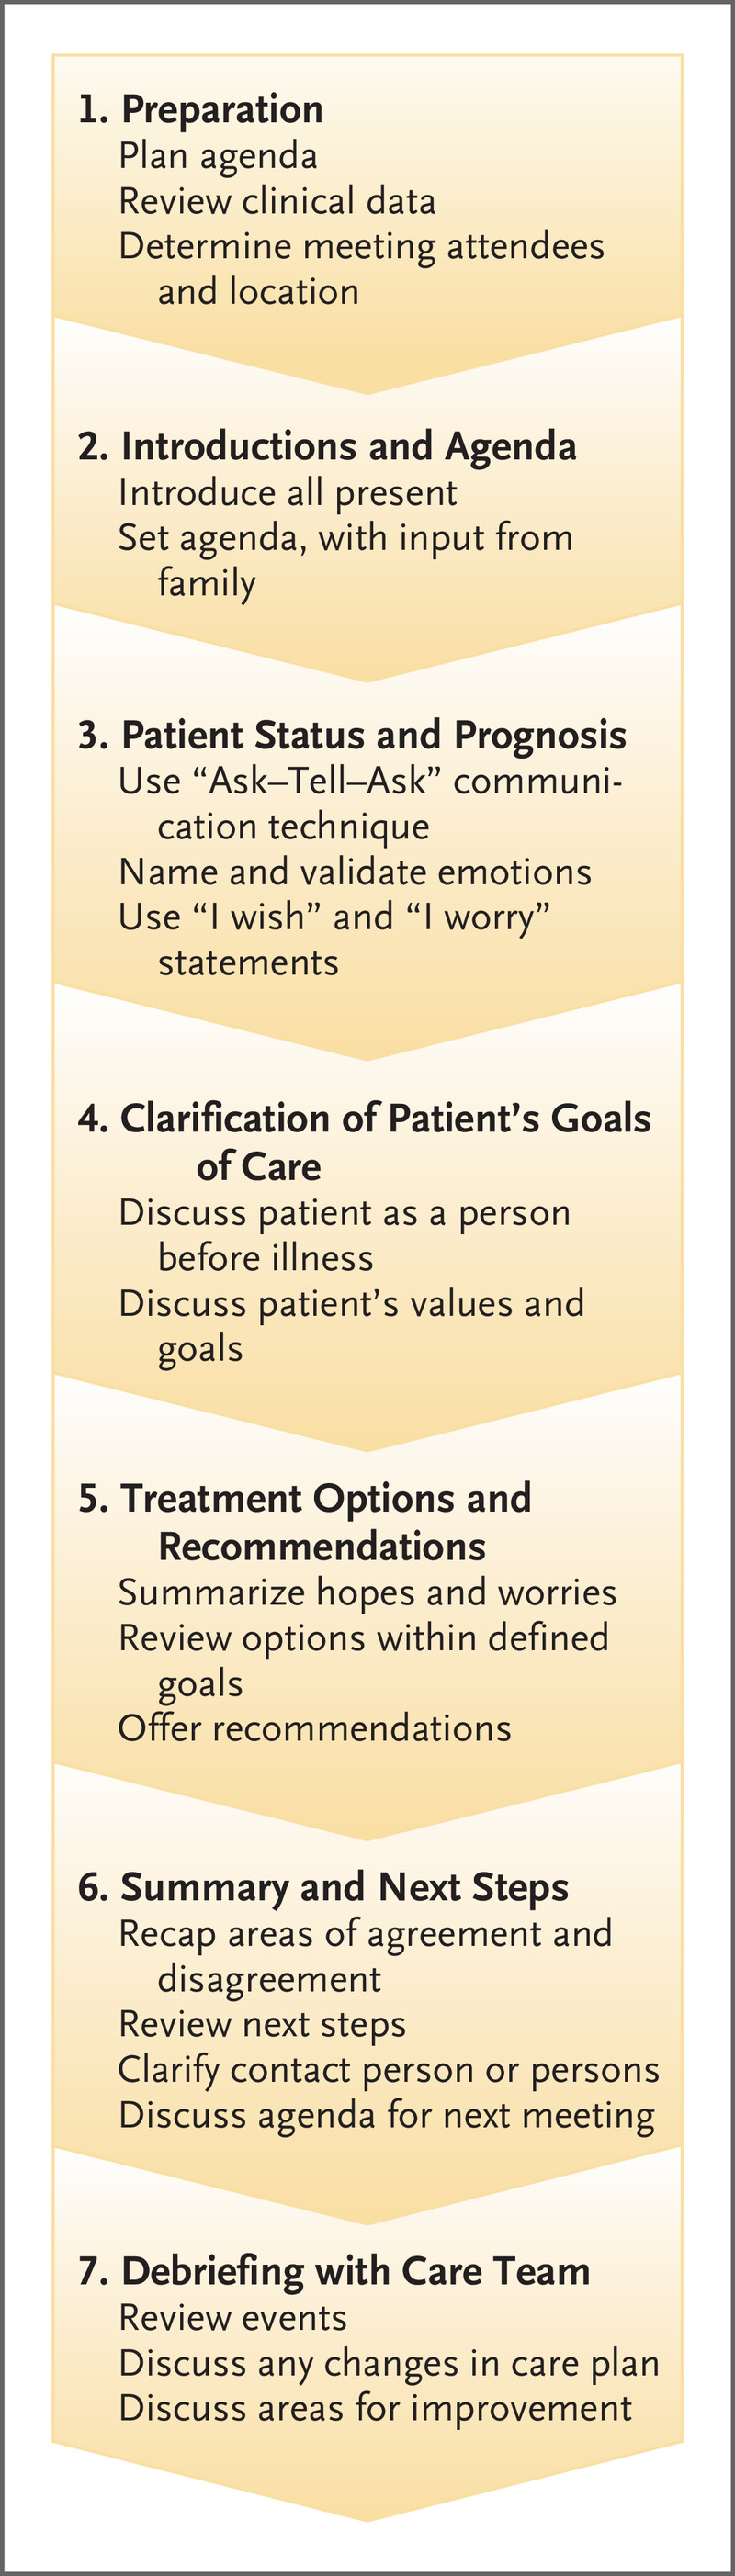 Materials developed by tara zagofsky & beatrice briggs (www.iifac.org) effective family meeting worksheets worksheet a: Family Meetings On Behalf Of Patients With Serious Illness Nejm